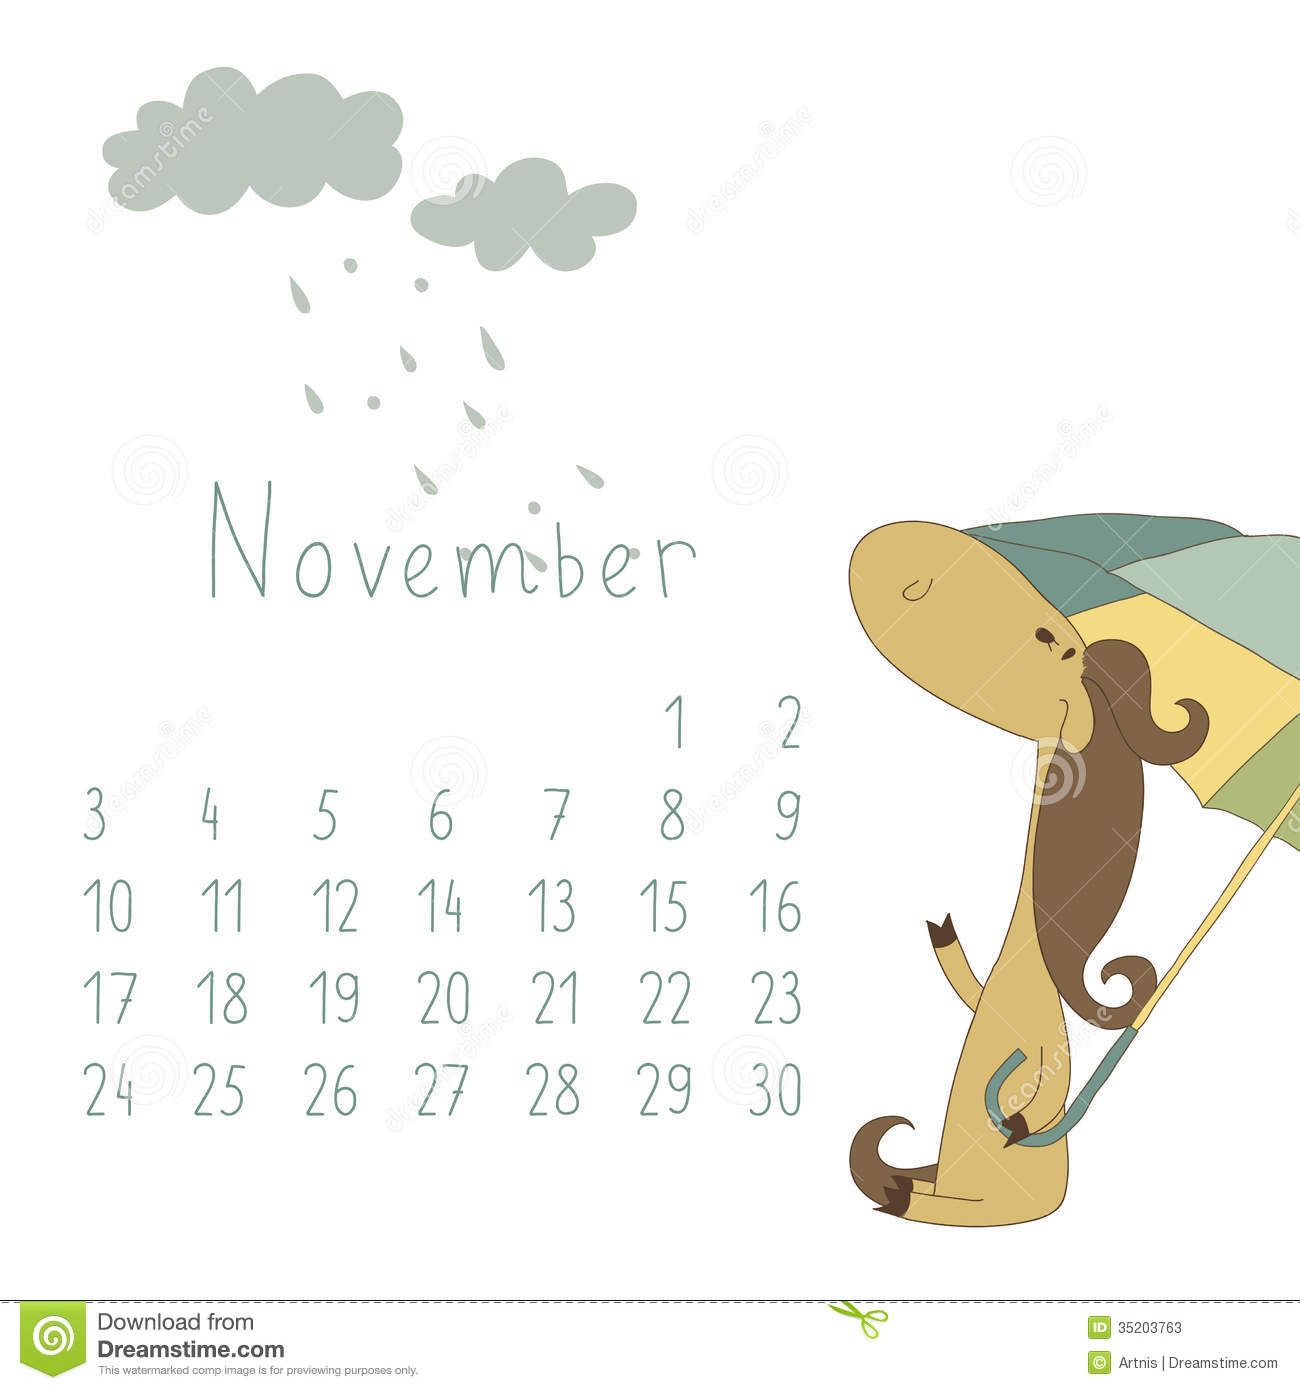 Clipart calendar november 2014 clip library Calendar For November 2014. Year Of The Horse. Stock Photos ... clip library